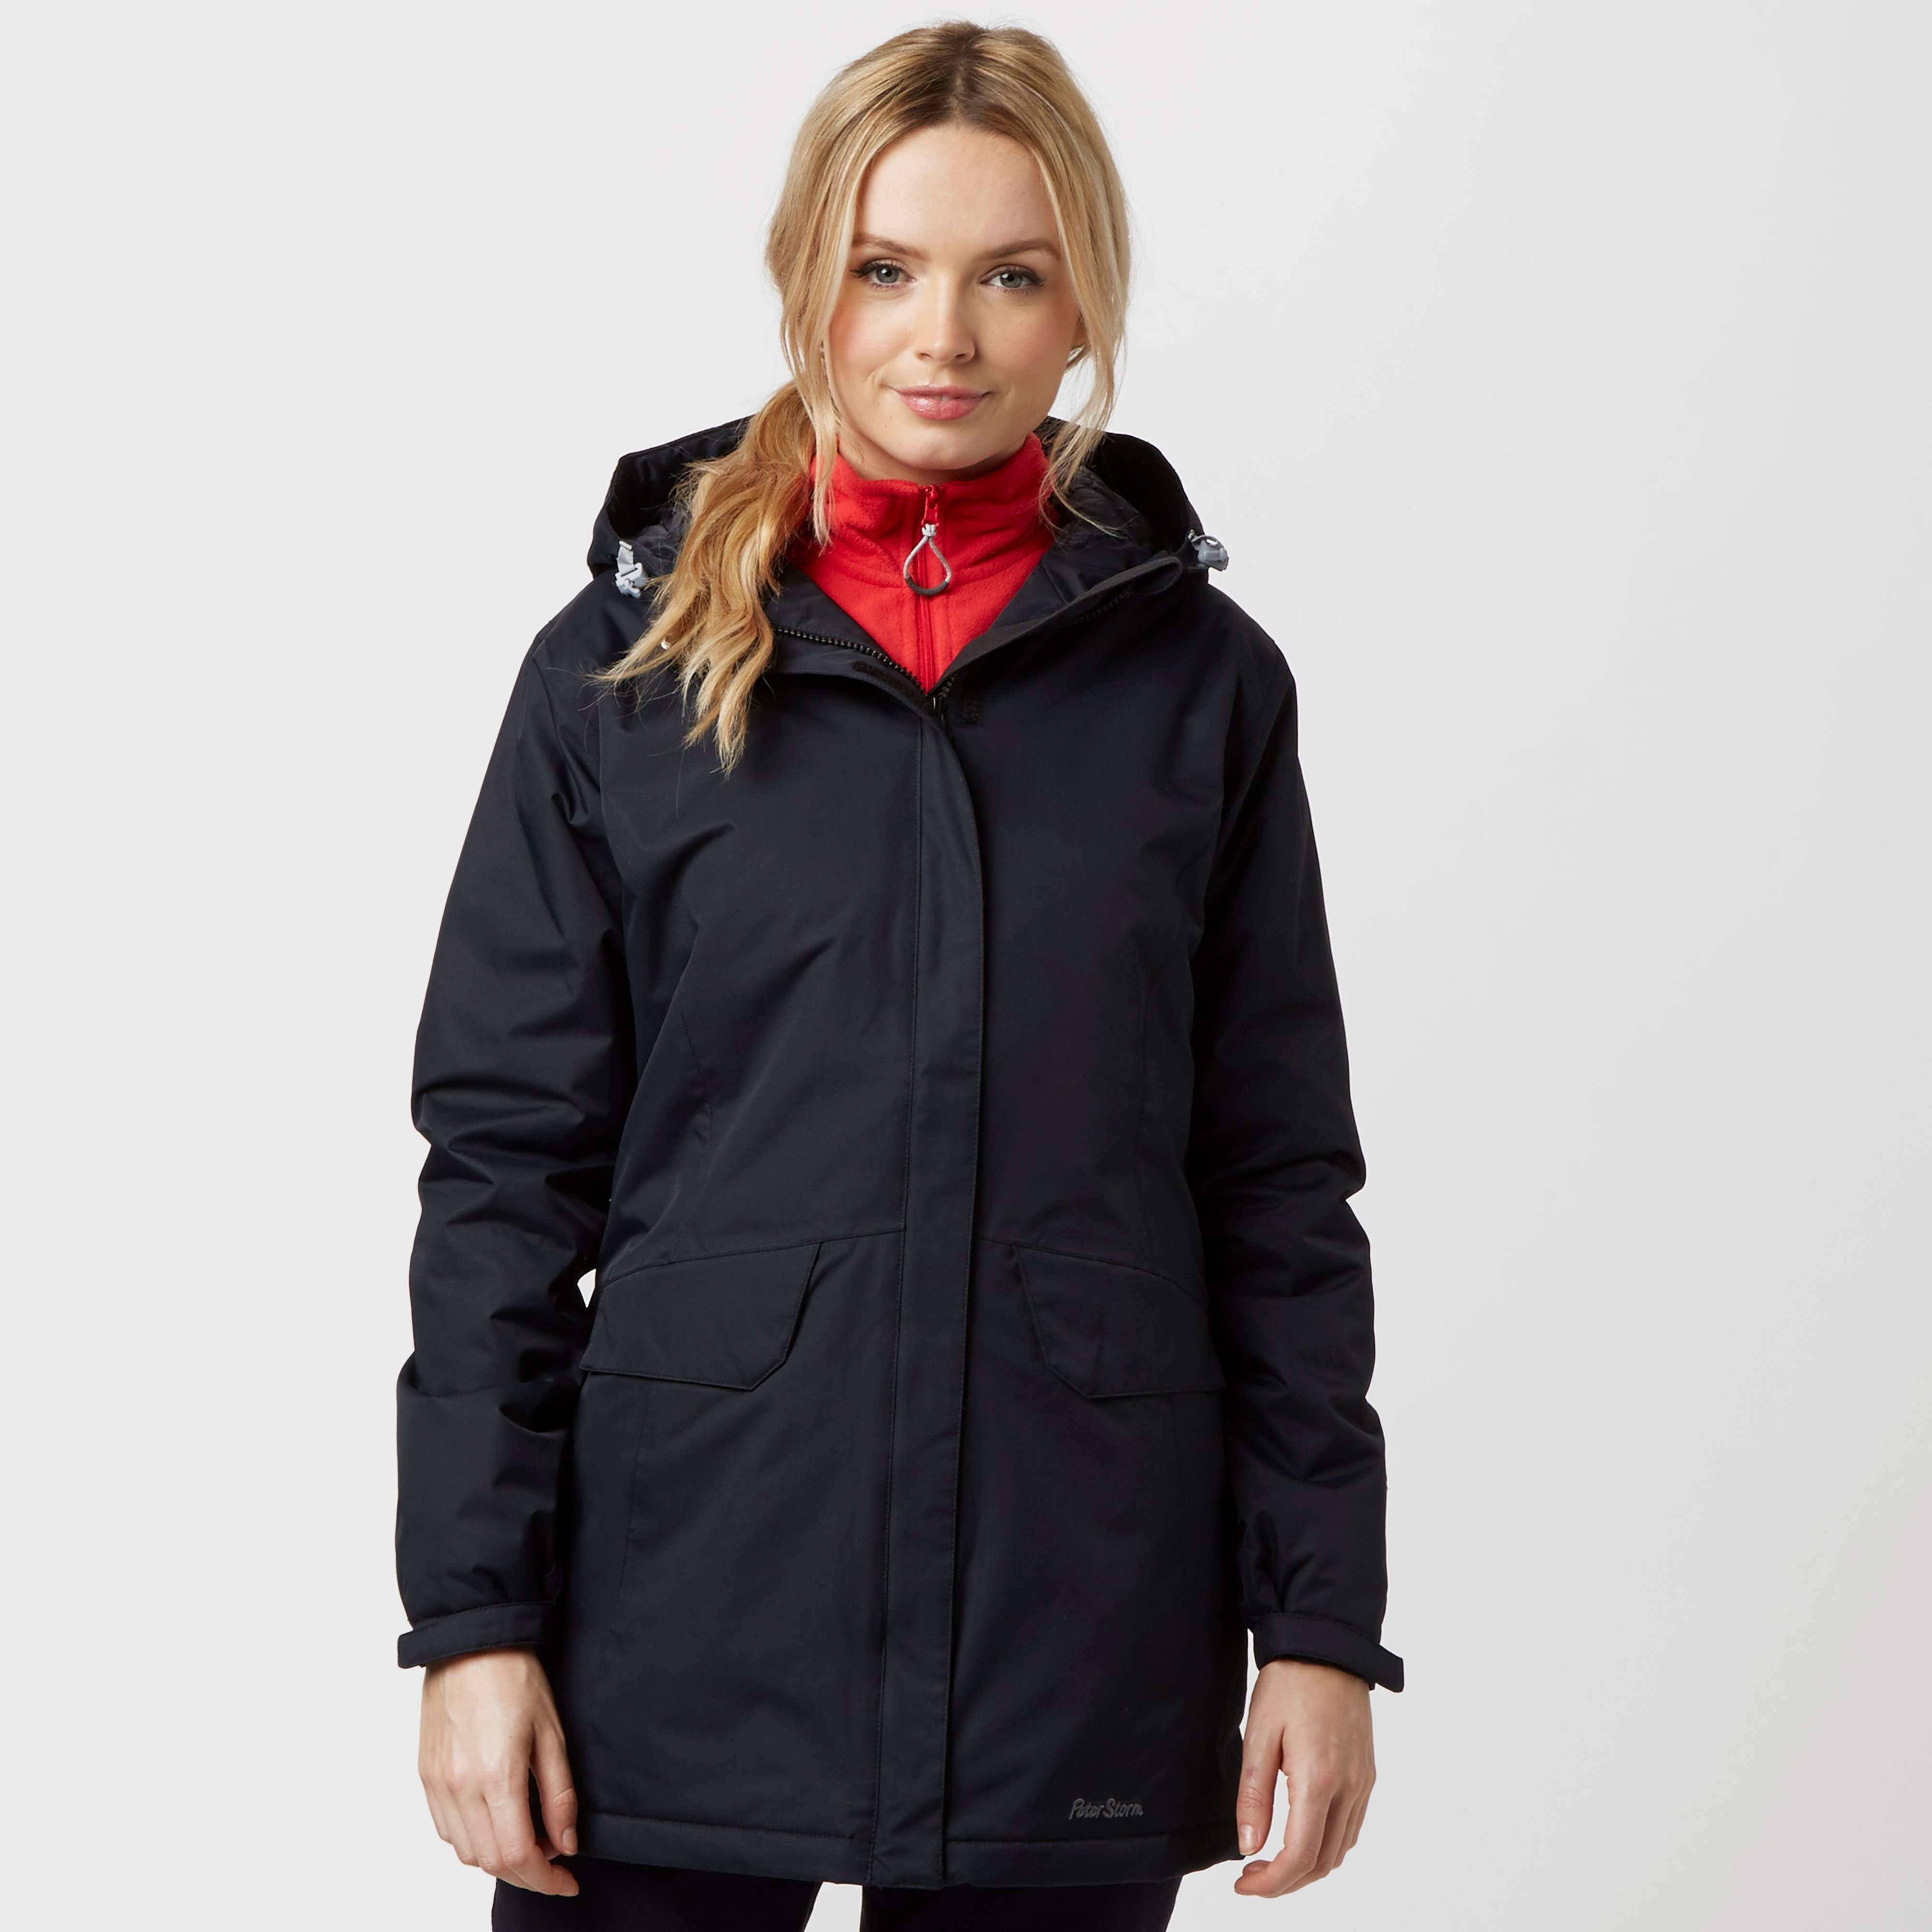 PETER STORM Women's Cyclone Insulated Jacket